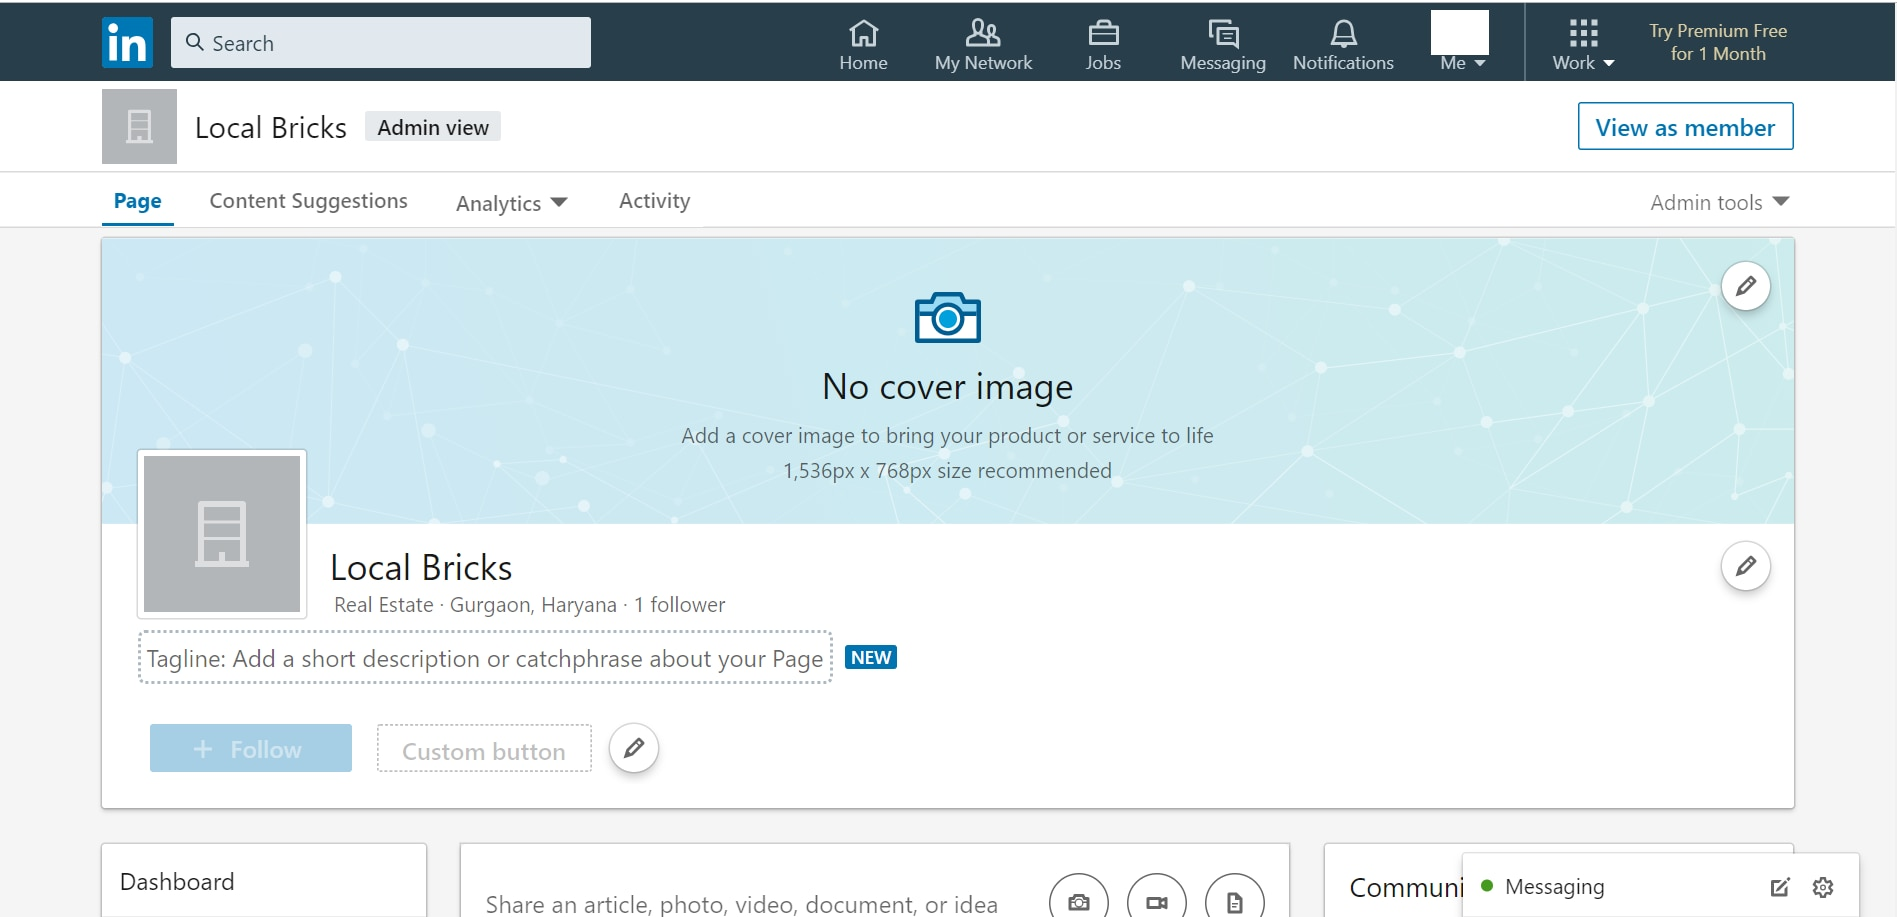 LinkedIn admin page depicting the drop down towards the top right of the page.